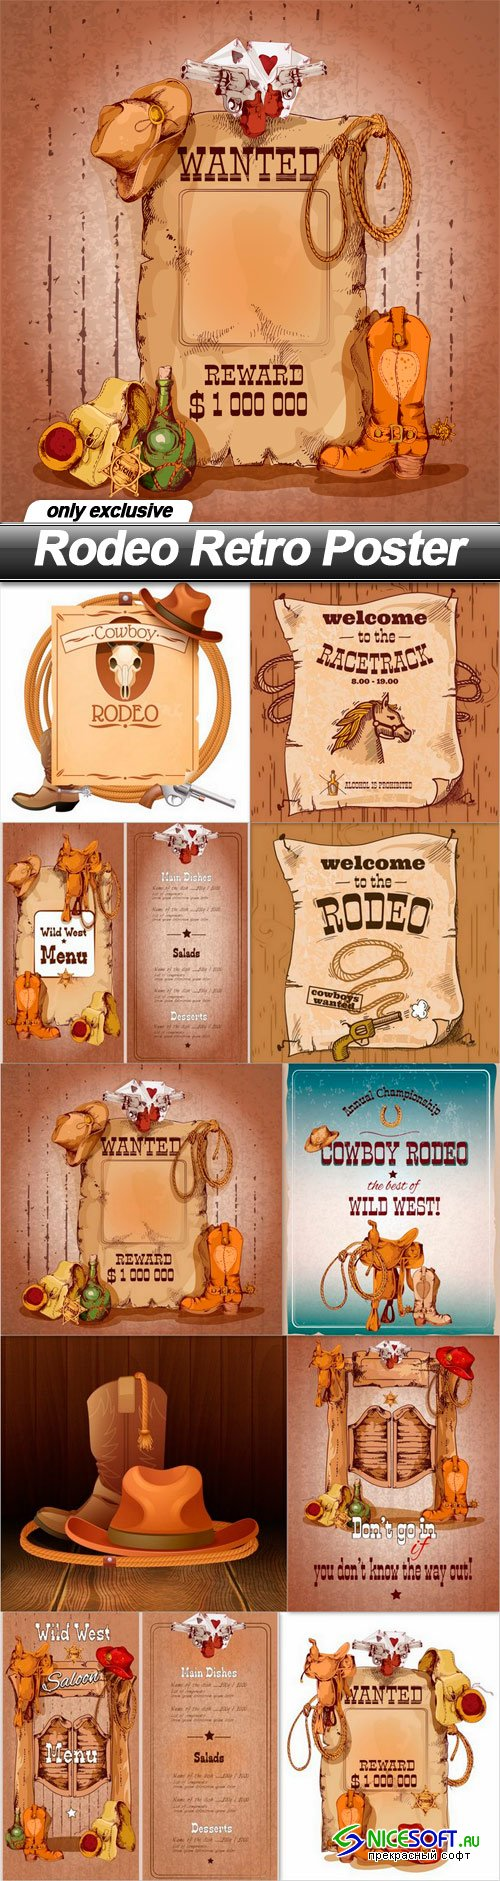 Rodeo Retro Poster - 10 EPS